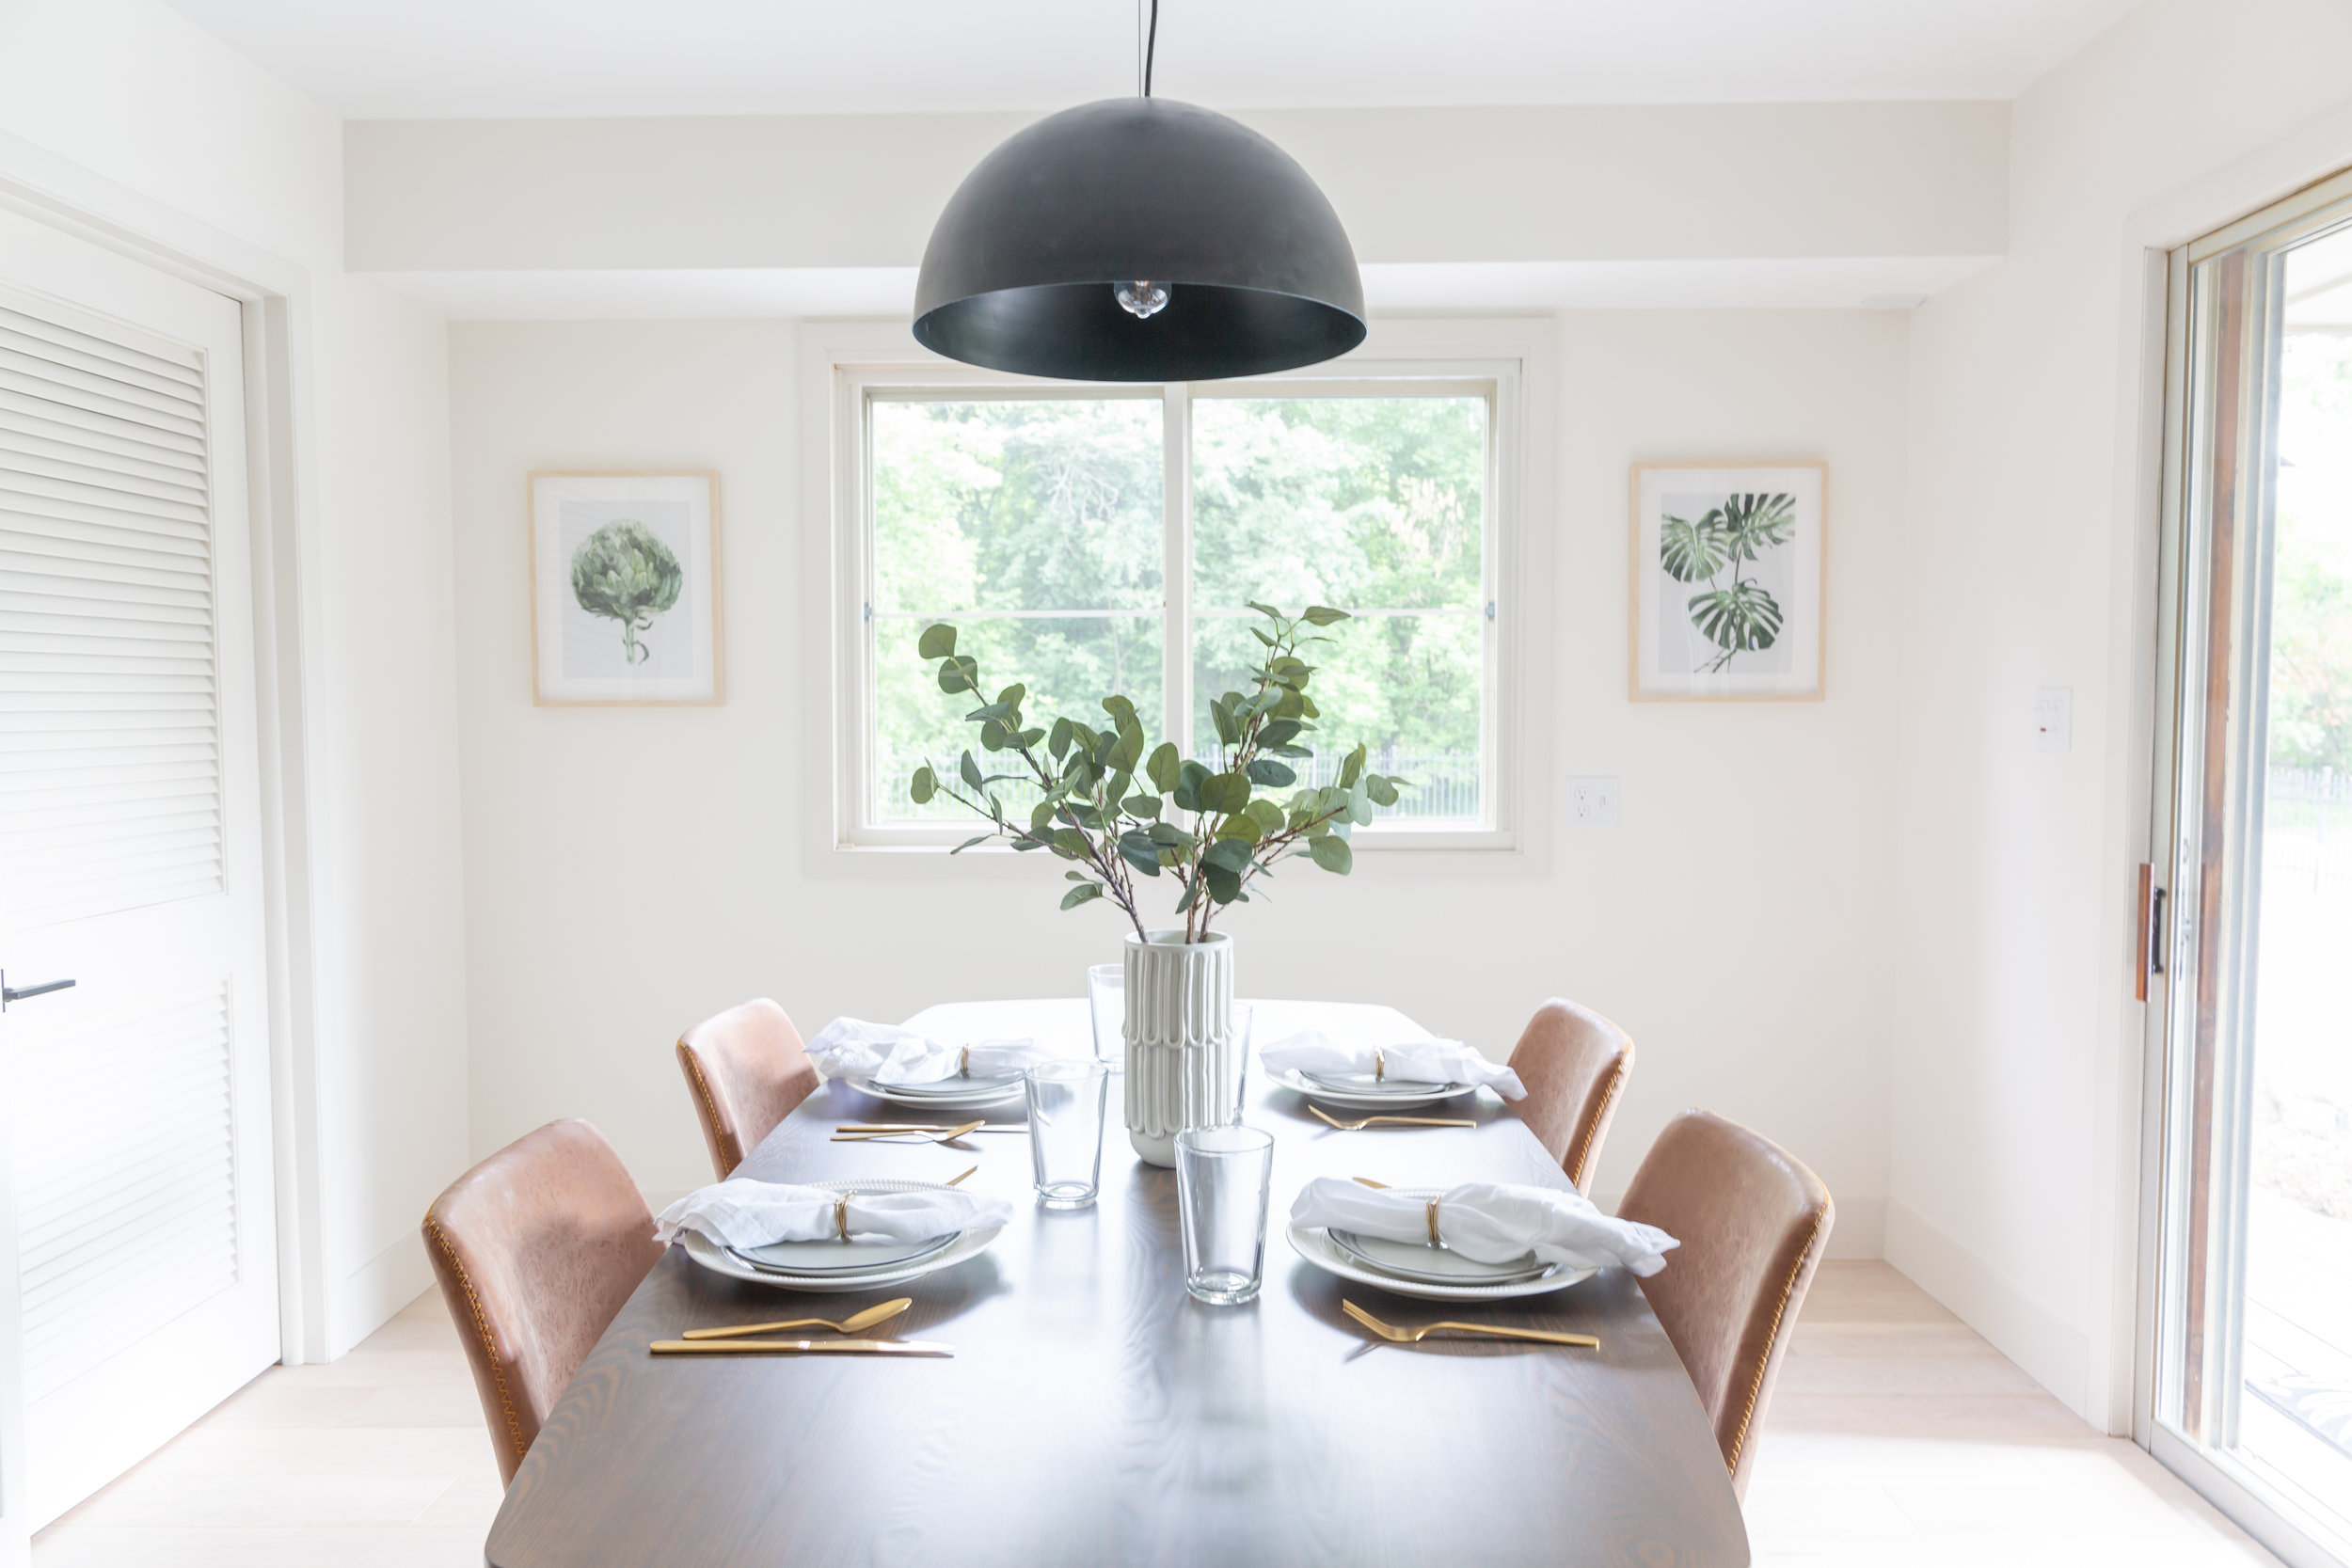 Pendant:  Target  | Kitchen Table:  Midwest Discount Furniture  | Dining Chairs:  TJ Maxx